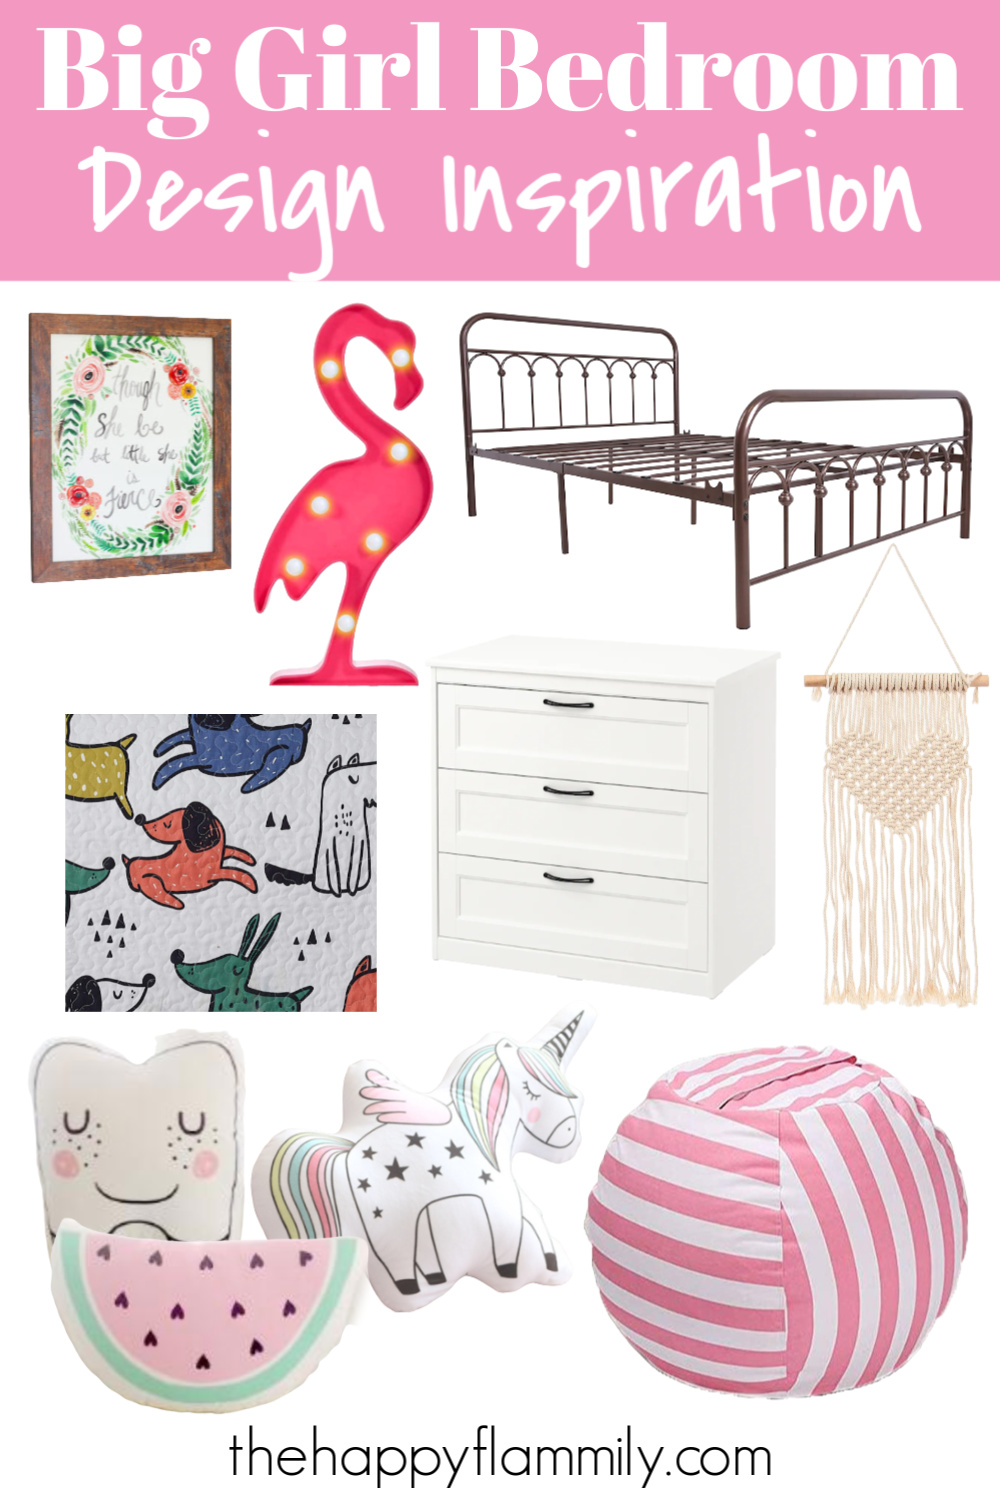 Big girl bedroom furniture. Little girl bedroom ideas. 9 year old bedroom ideas girl. Big girl bedroom wall decor. Teenage girl bedroom ideas. Little girl bedroom ideas for small rooms. Big girl bedroom inspiration. Big girl bedroom ideas. #bedroom #girl #kindergarten #homedecor #decor #moodboard #interiordesign